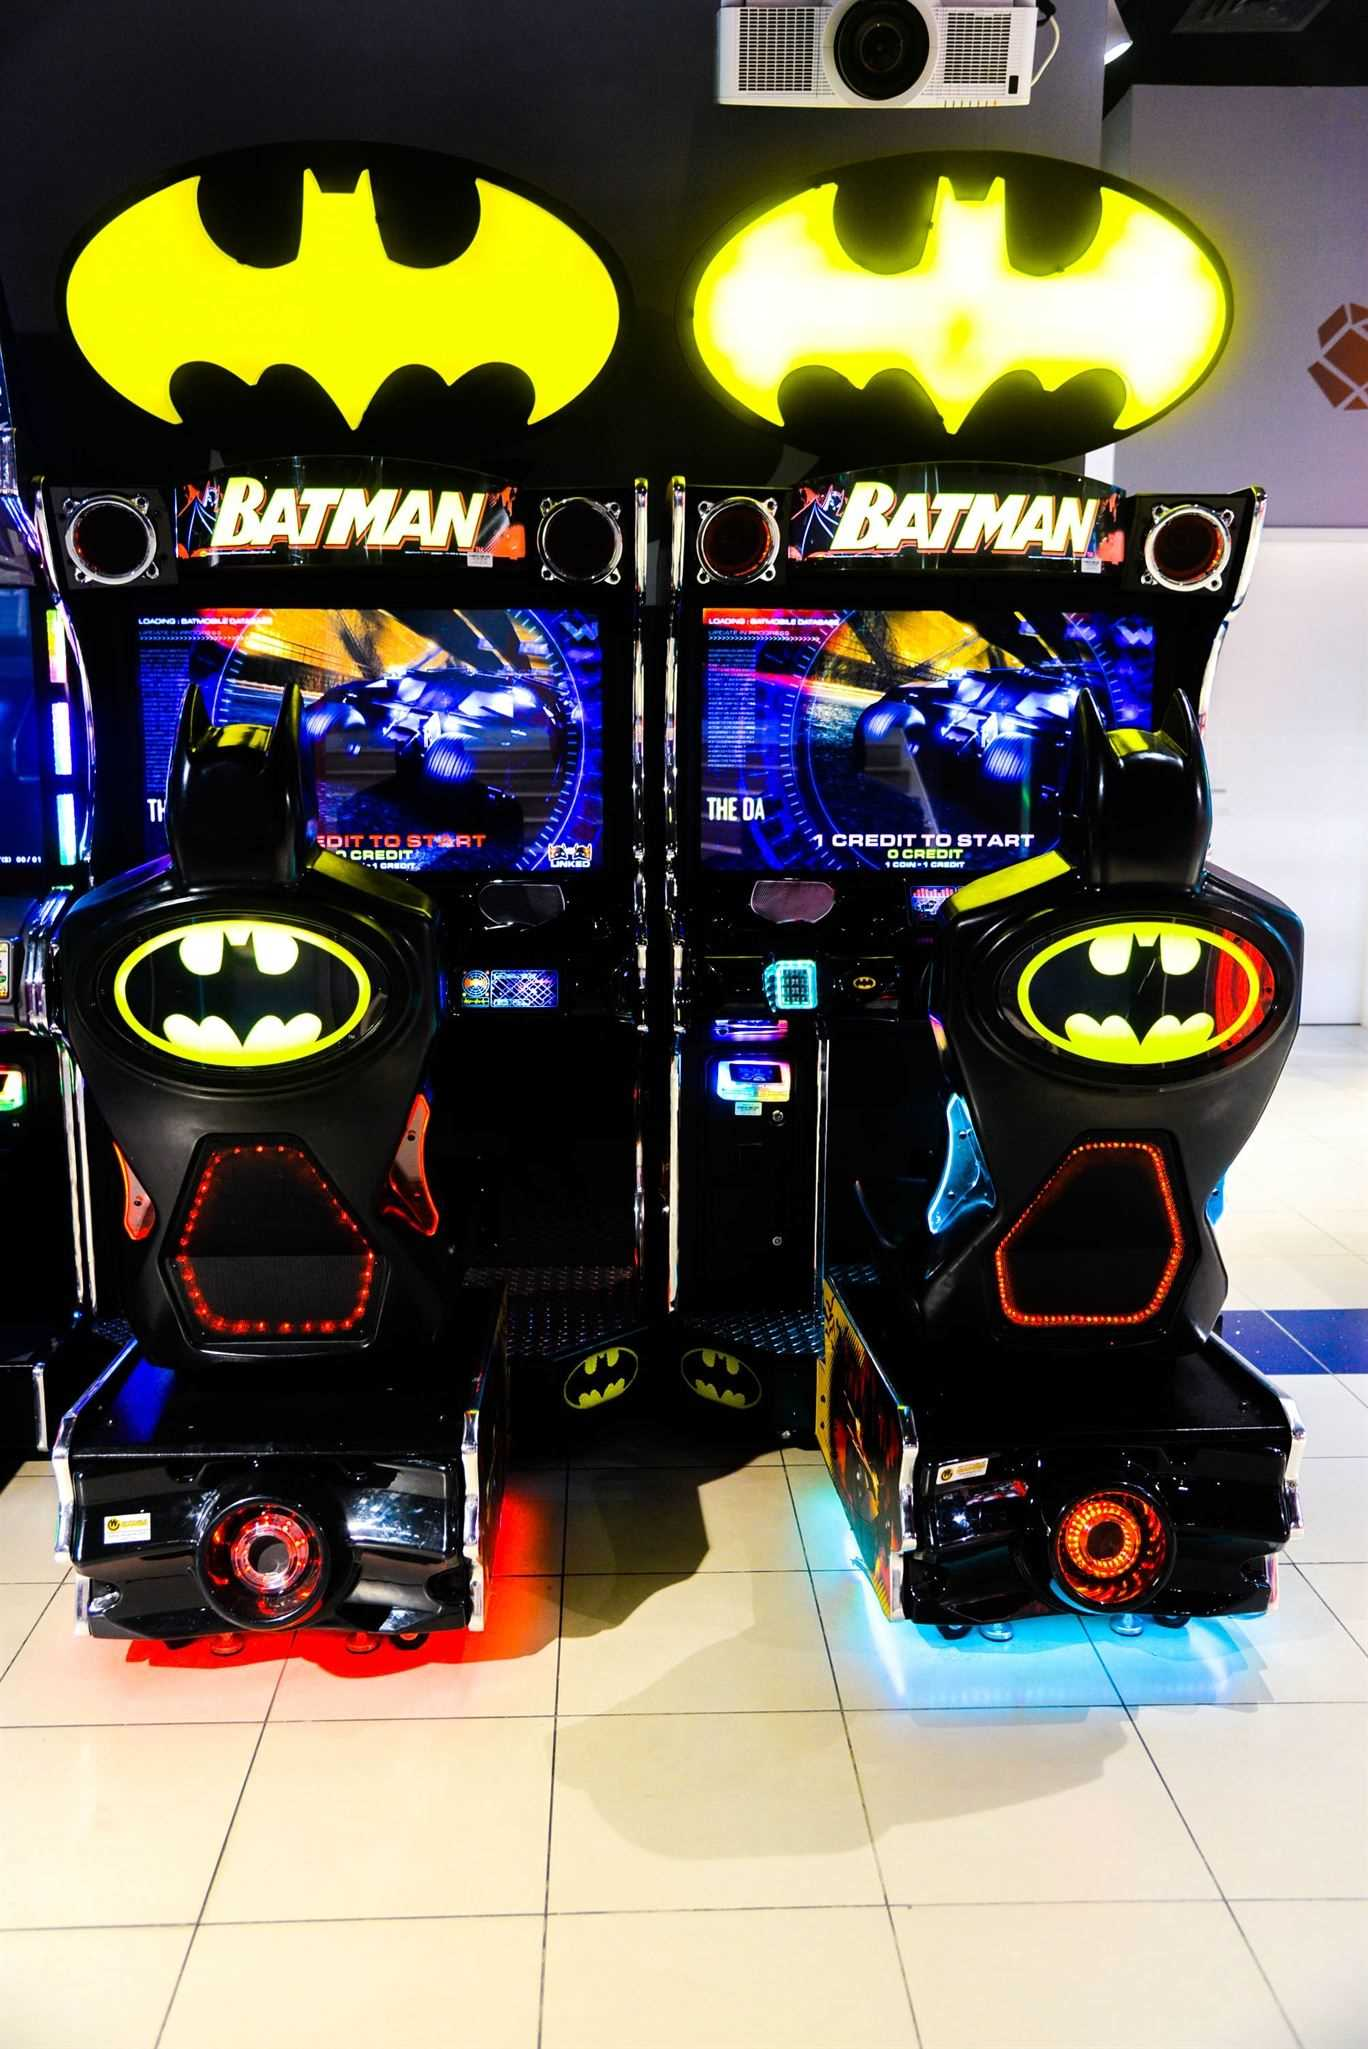 Batman game at Magic Planet Marina Mall Abu Dhabi